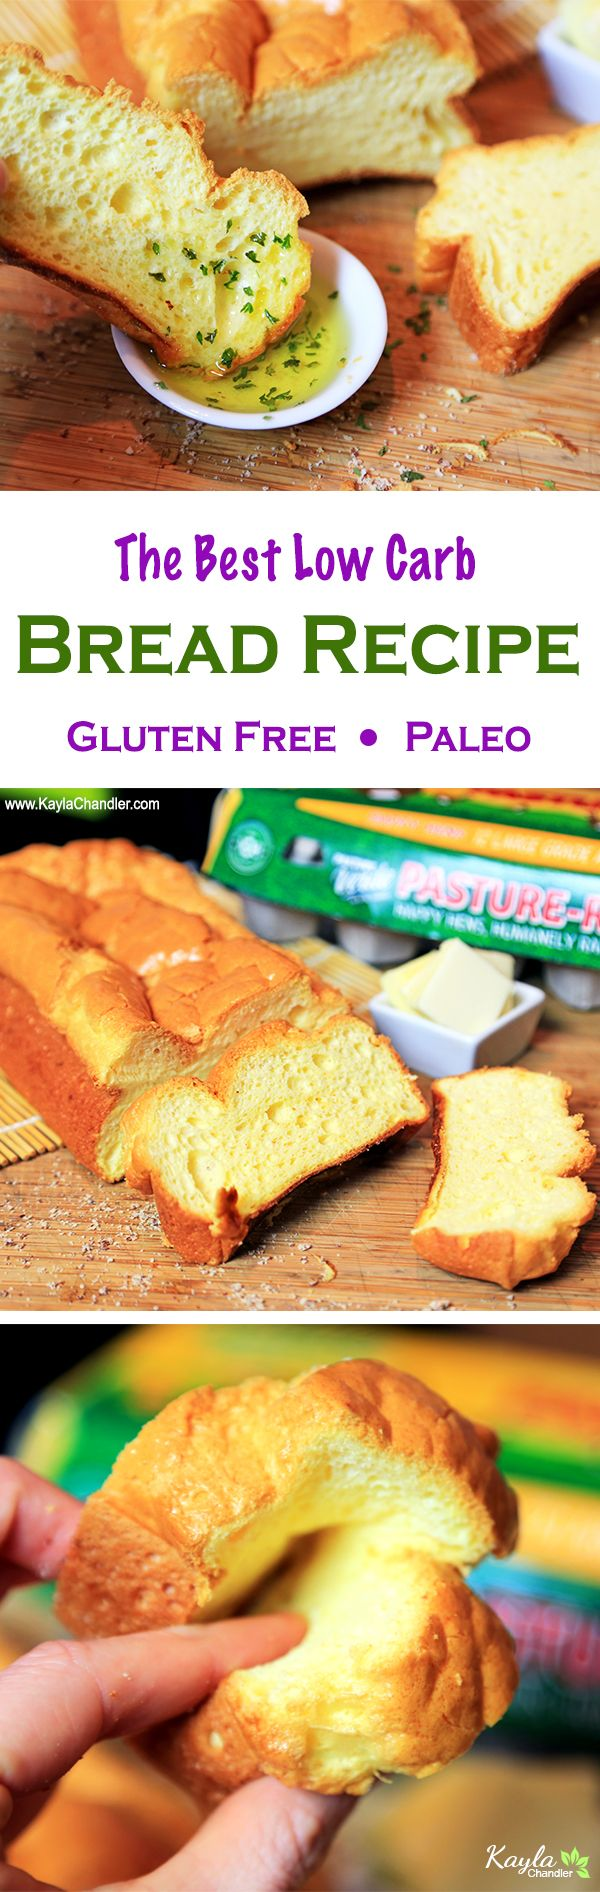 Only 4g of Carbs for the ENTIRE Loaf of Bread! - Low Carb, Gluten Free, Keto, & Paleo.                                                                                                                                                                                 More